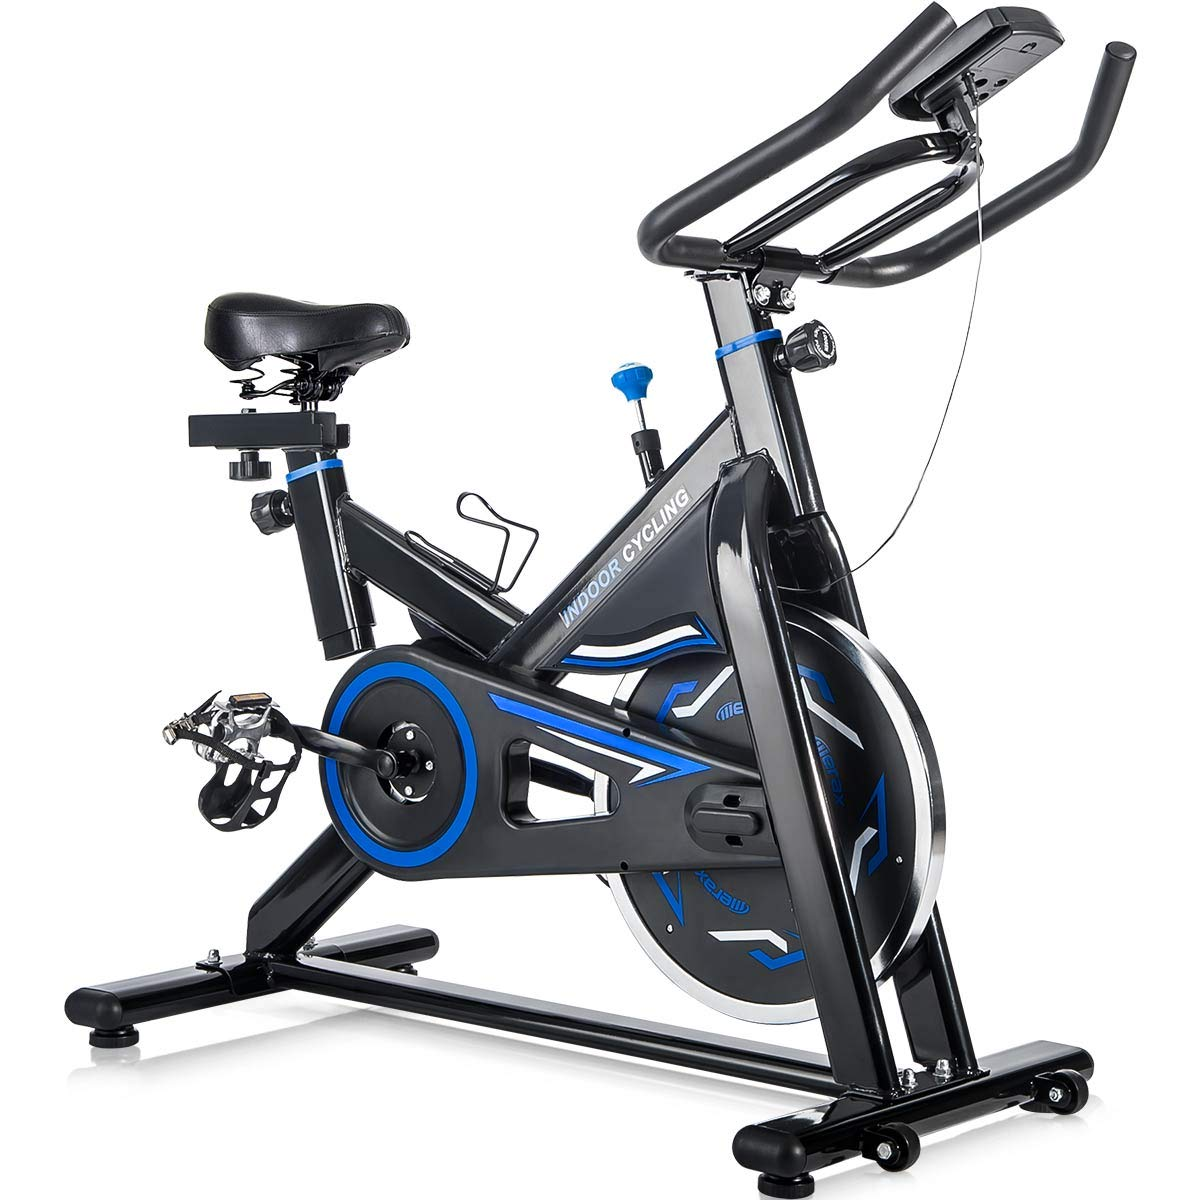 Merax Deluxe Indoor Cycling Bike Cycle Trainer Exercise Bicycle (Black & Blue)